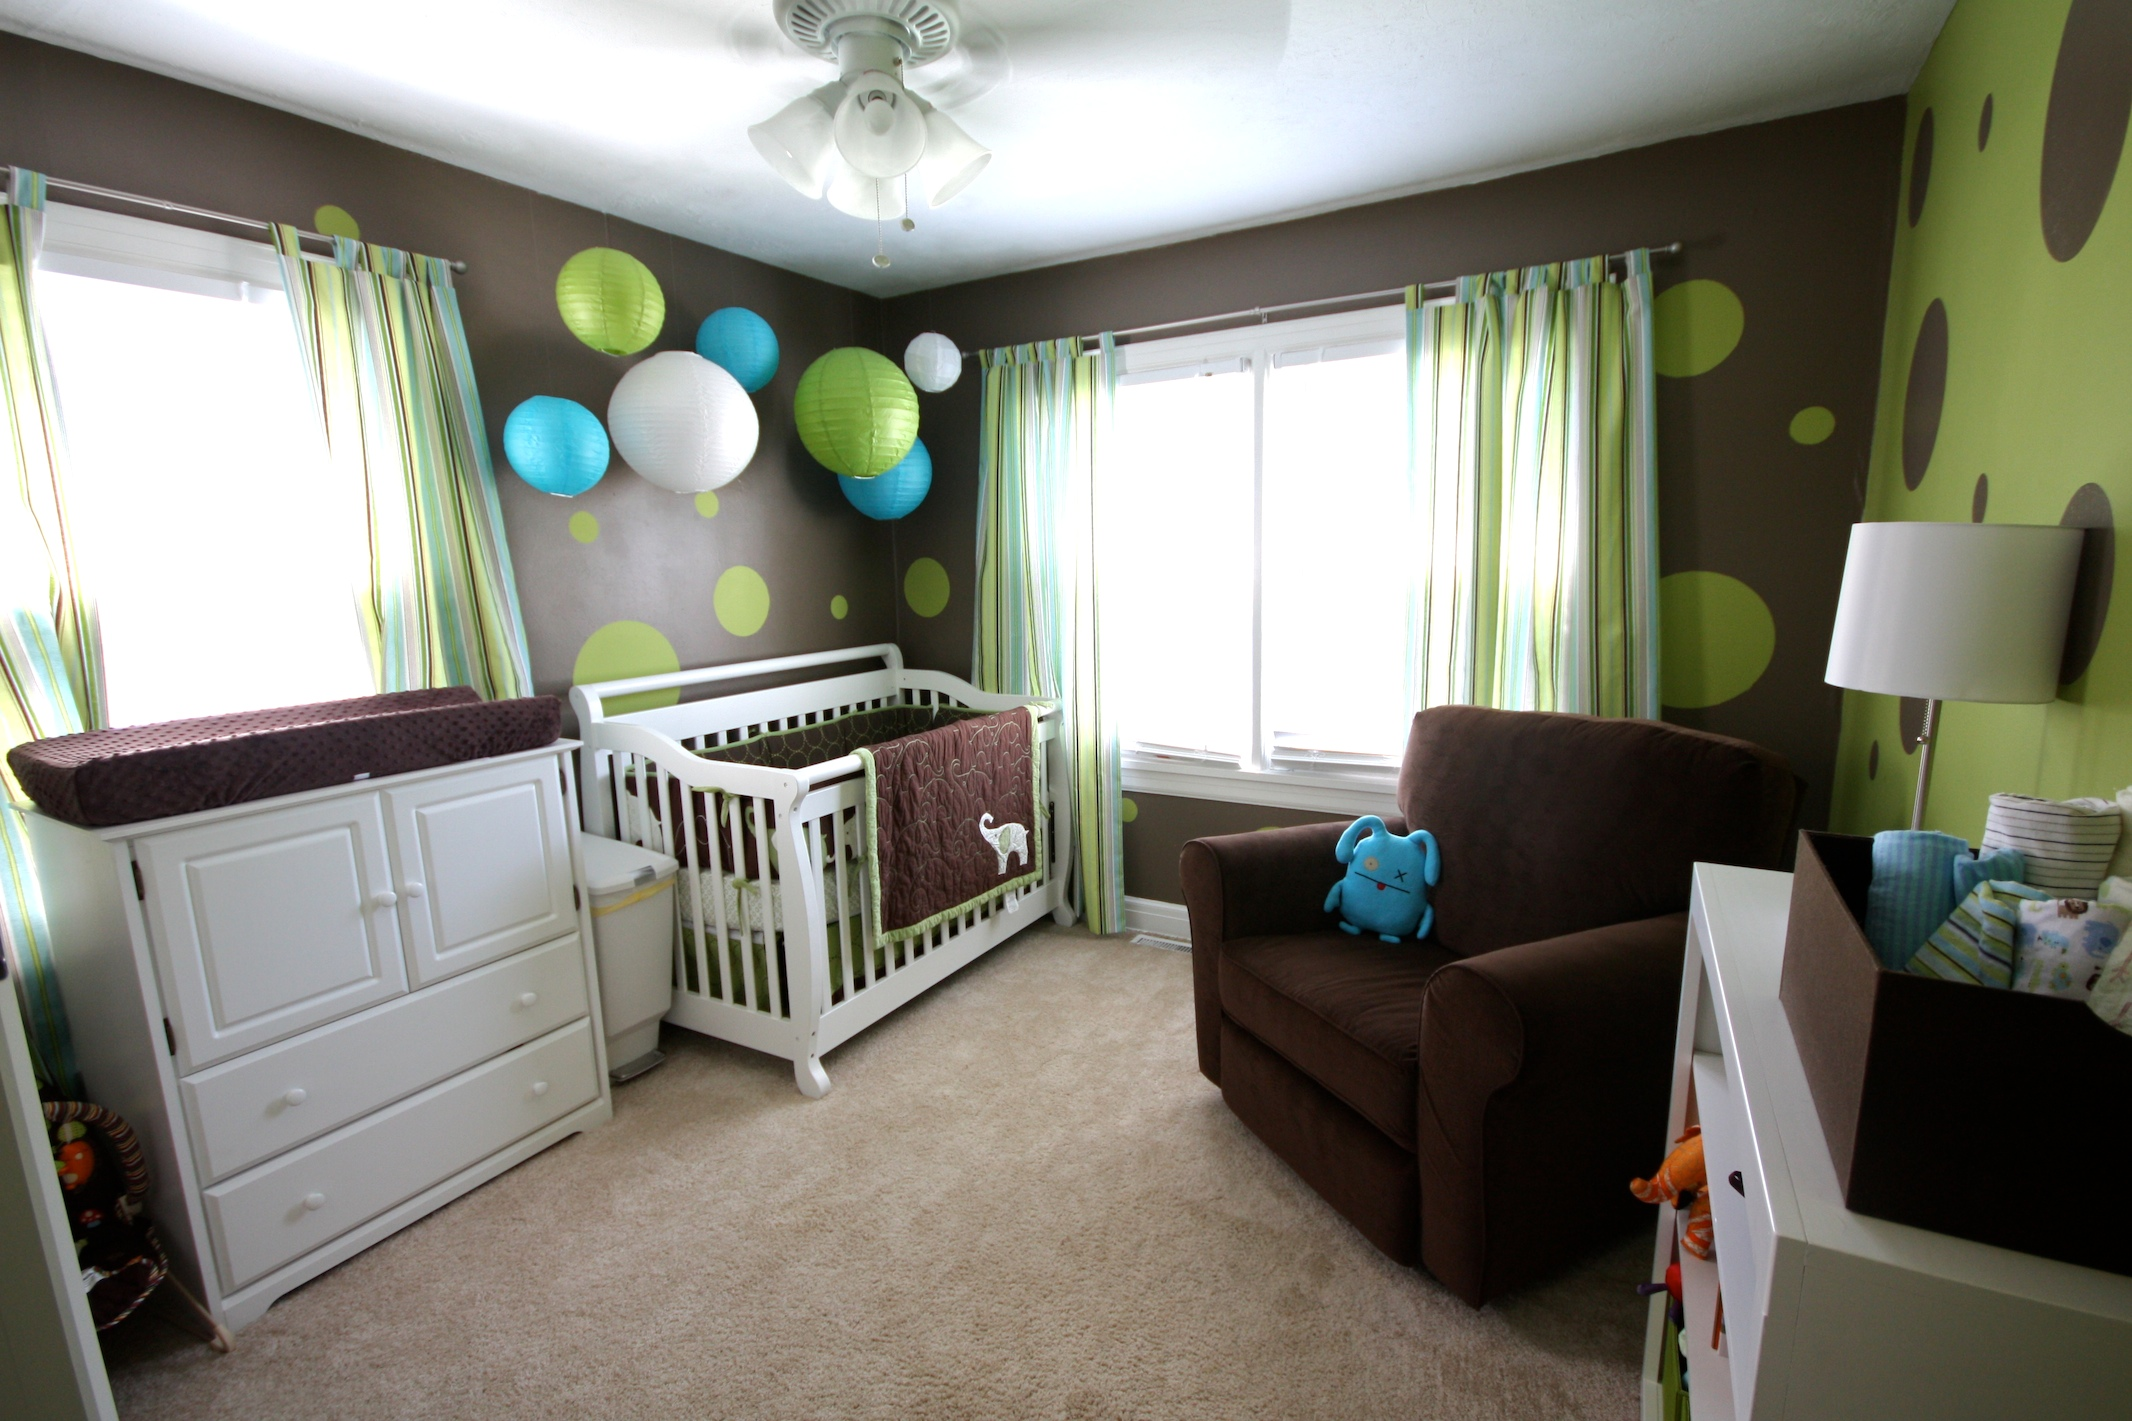 Green baby boy room decor - Green Baby Boy Room Decor 5